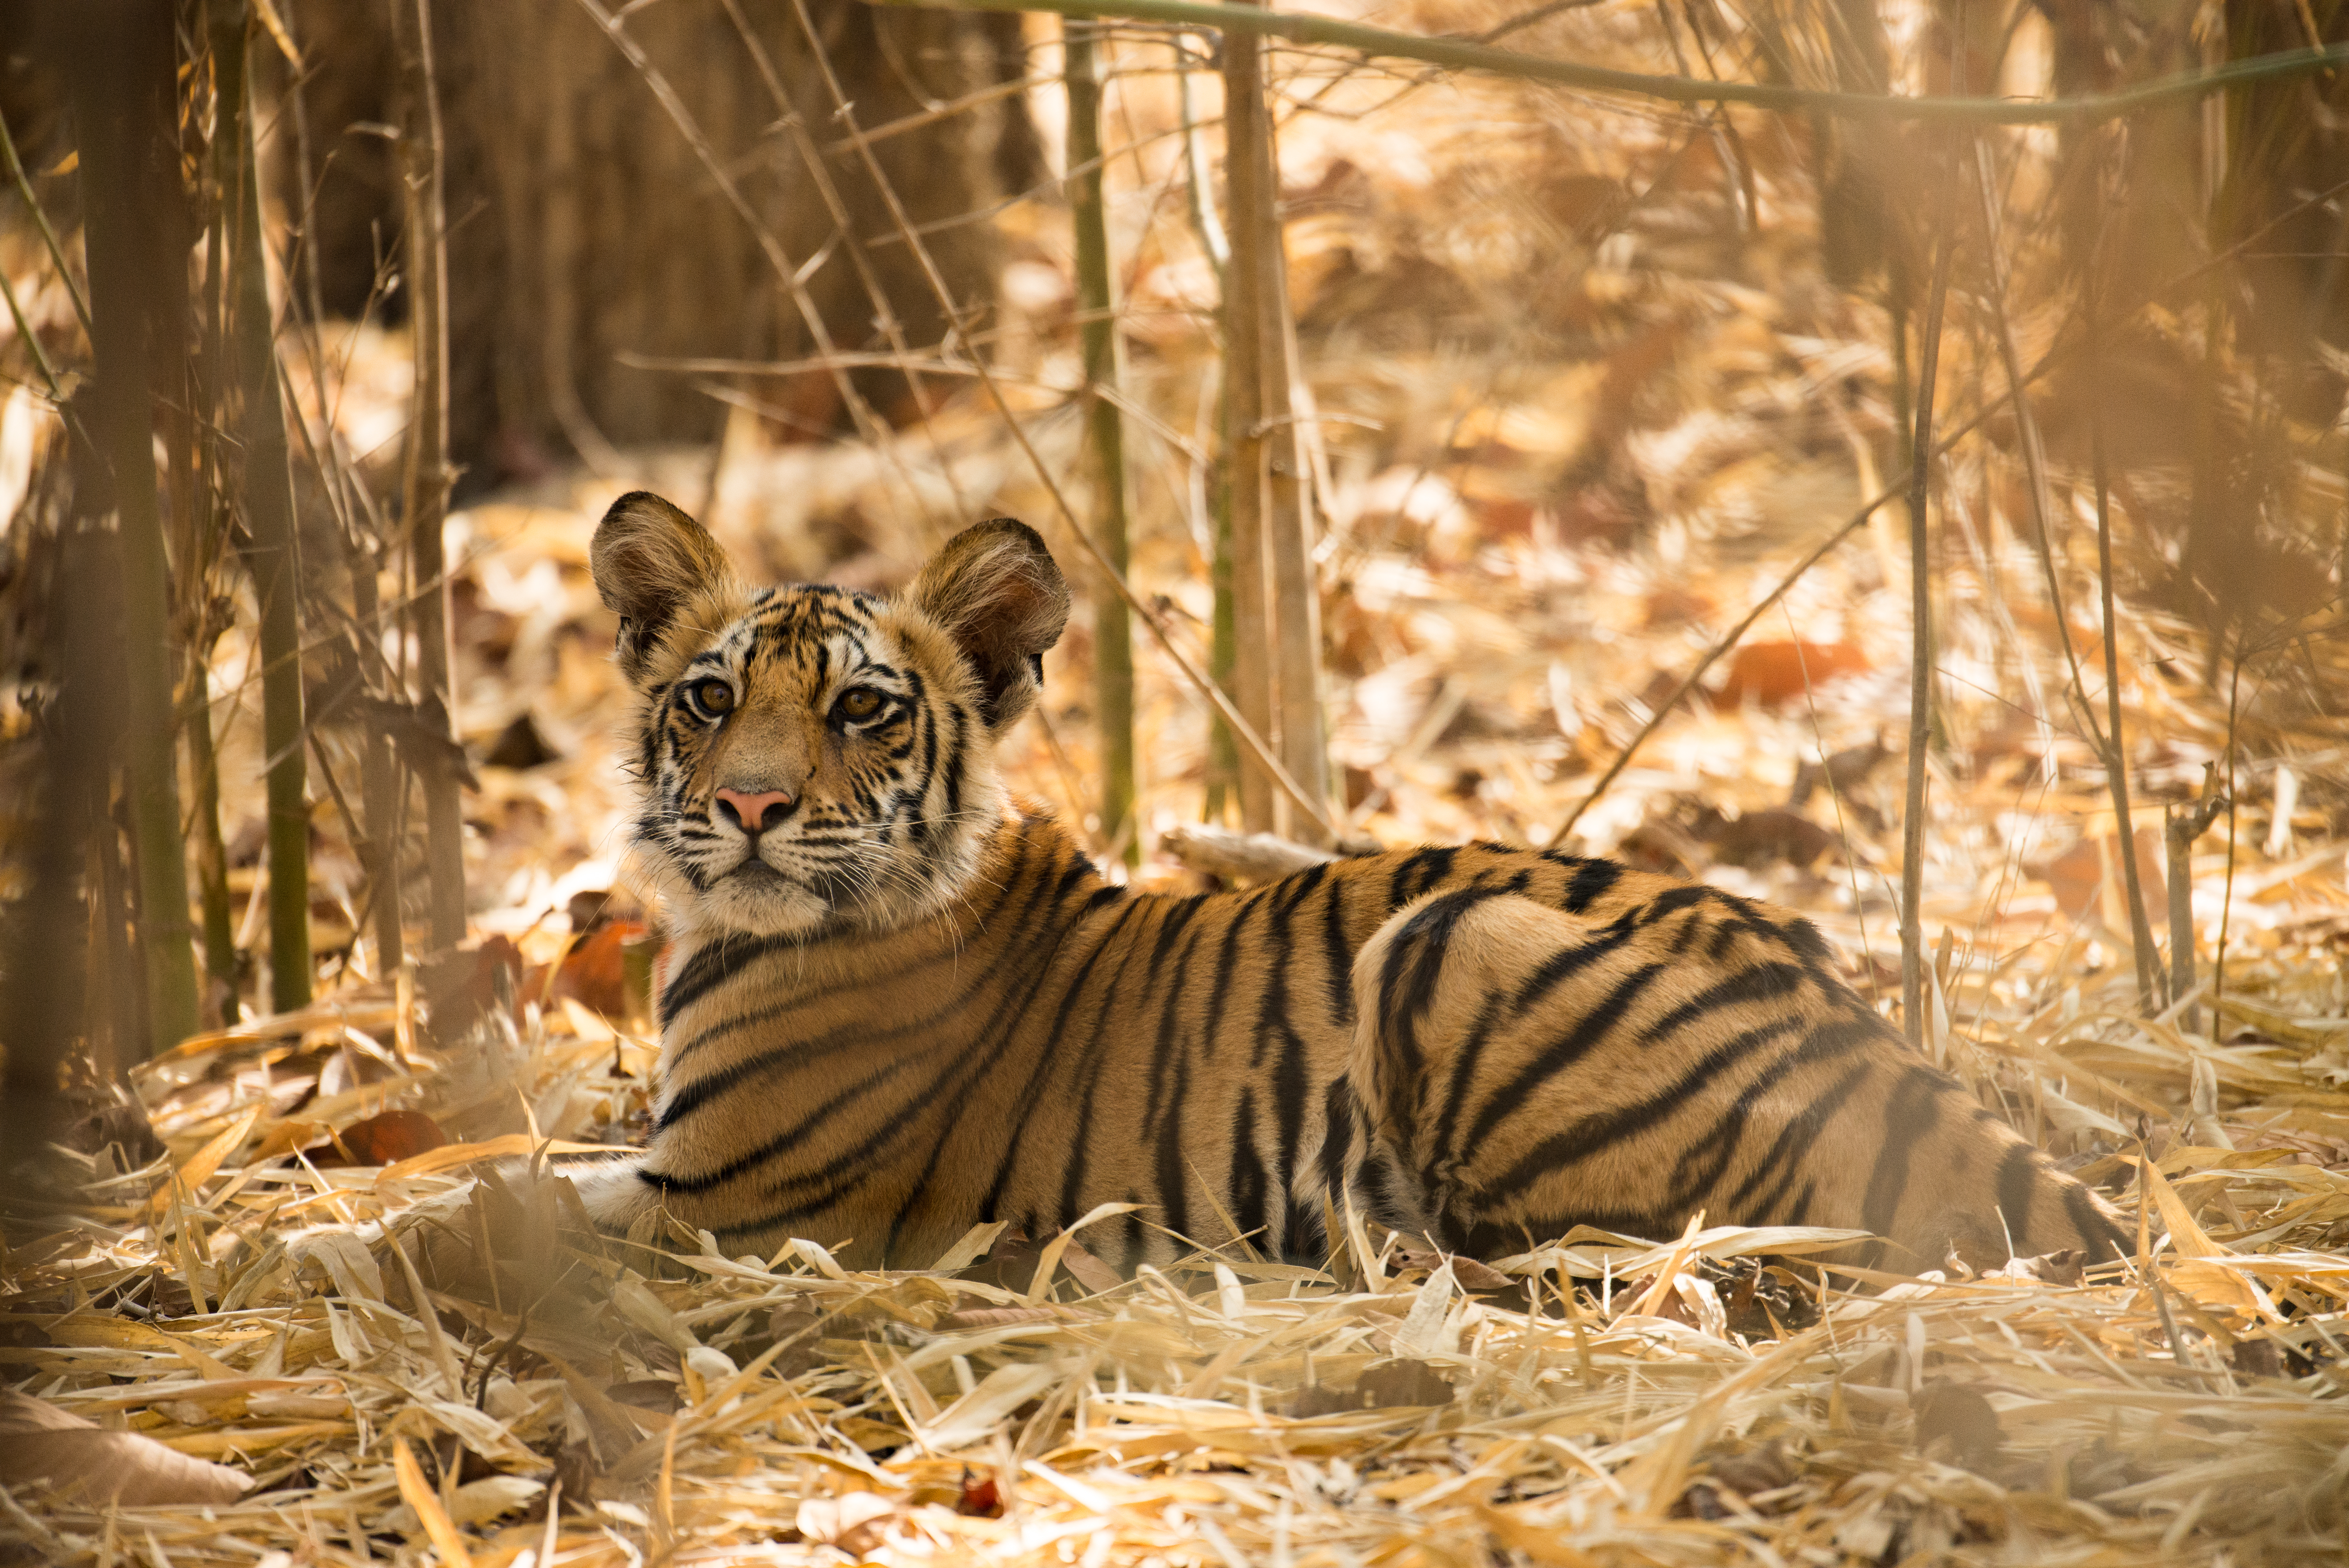 A 4-month-old tiger cub resting in the bamboo grove  in Bandhavgarh National Park, Madhya Pradesh, India on May 17, 2017.